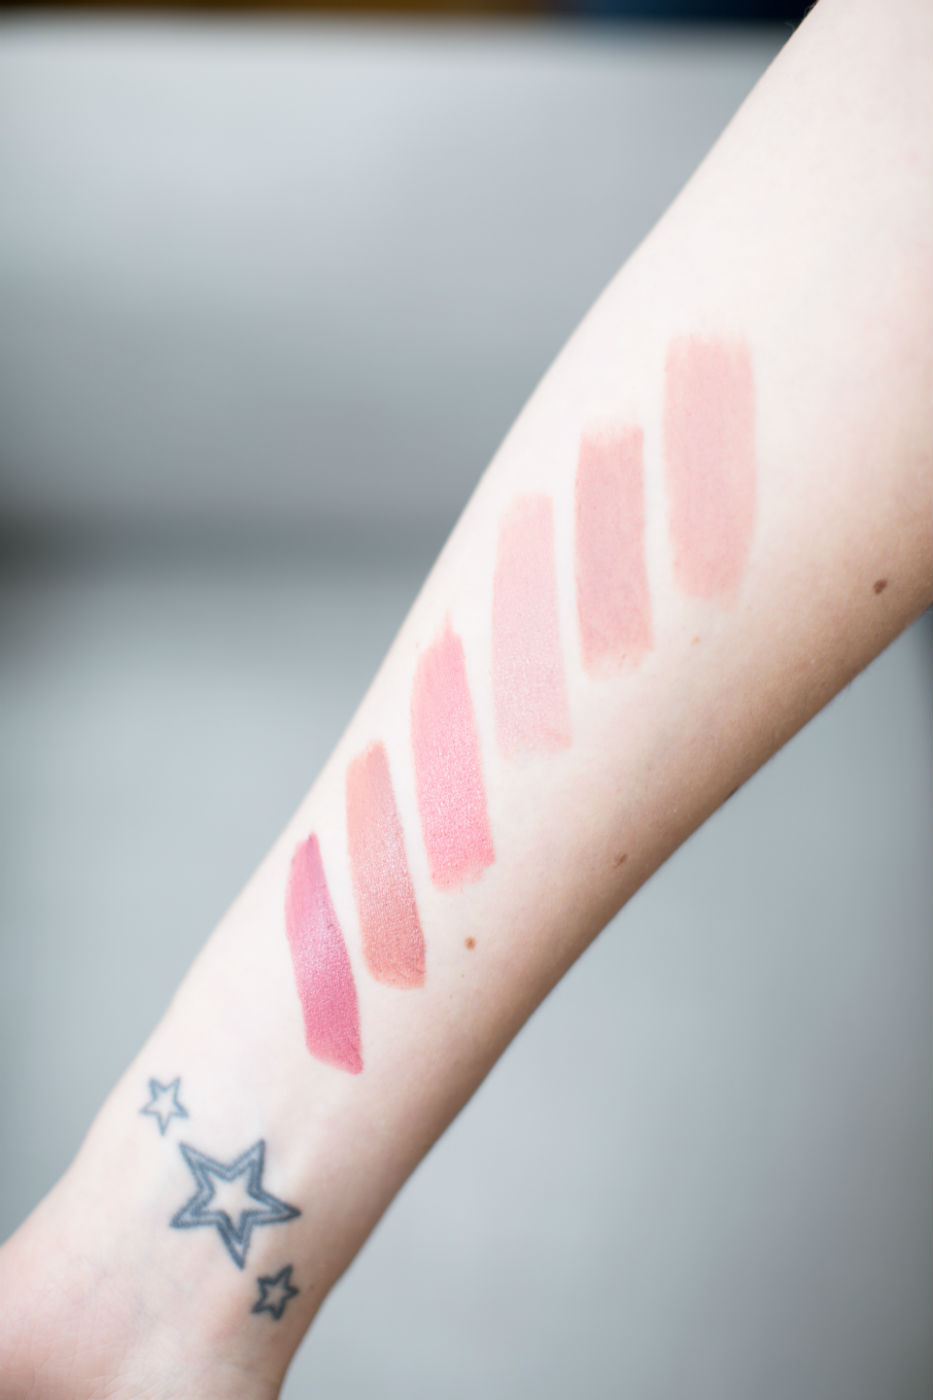 lily-pebbles-colorpop-colourpop-lipsticks-review-8